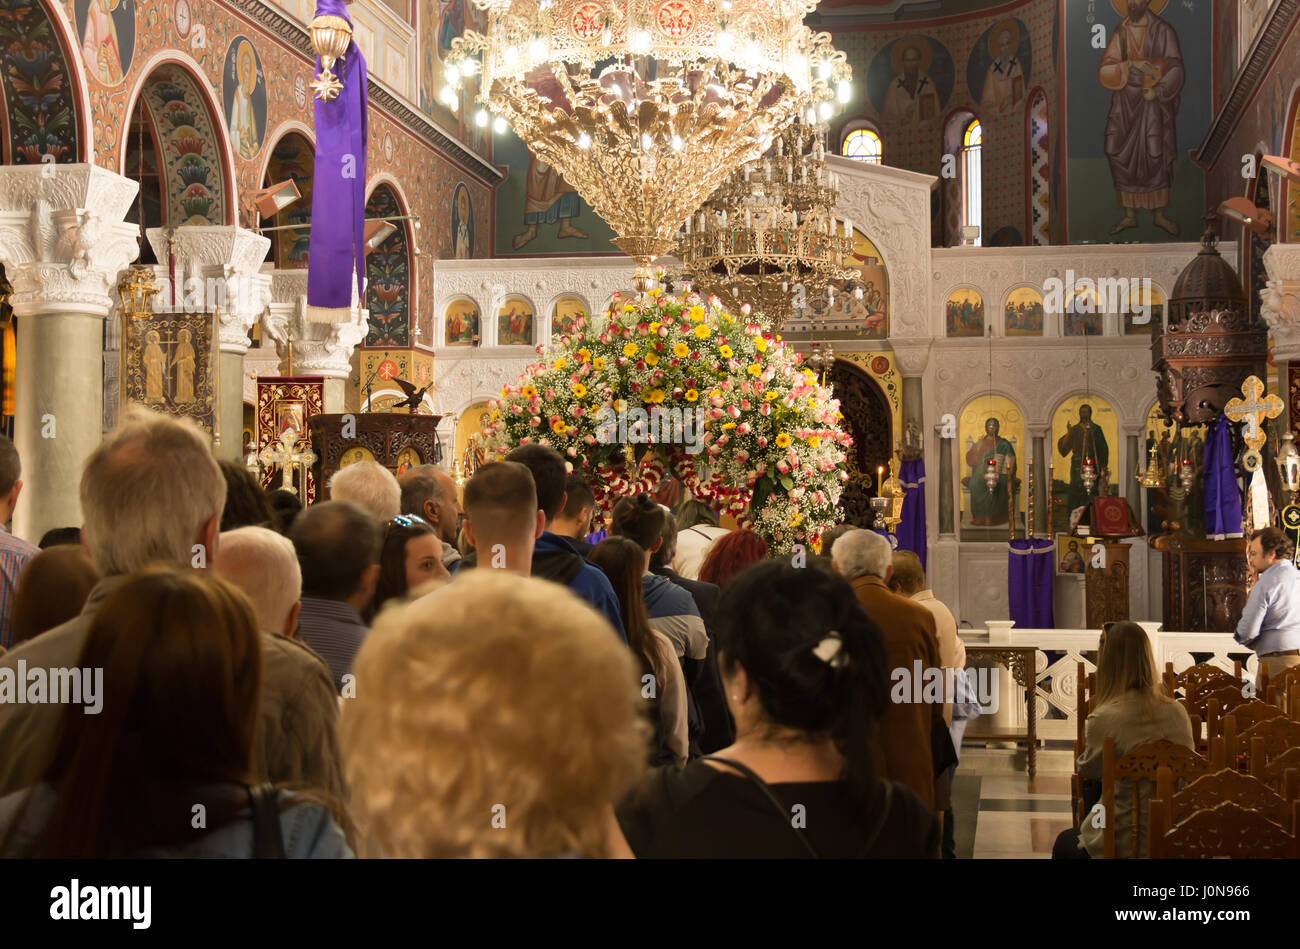 Larissa, Greece. 14th Apr, 2017. Holy Week in Greece: People on a line waiting to kiss the figure of Christ inside - Stock Image